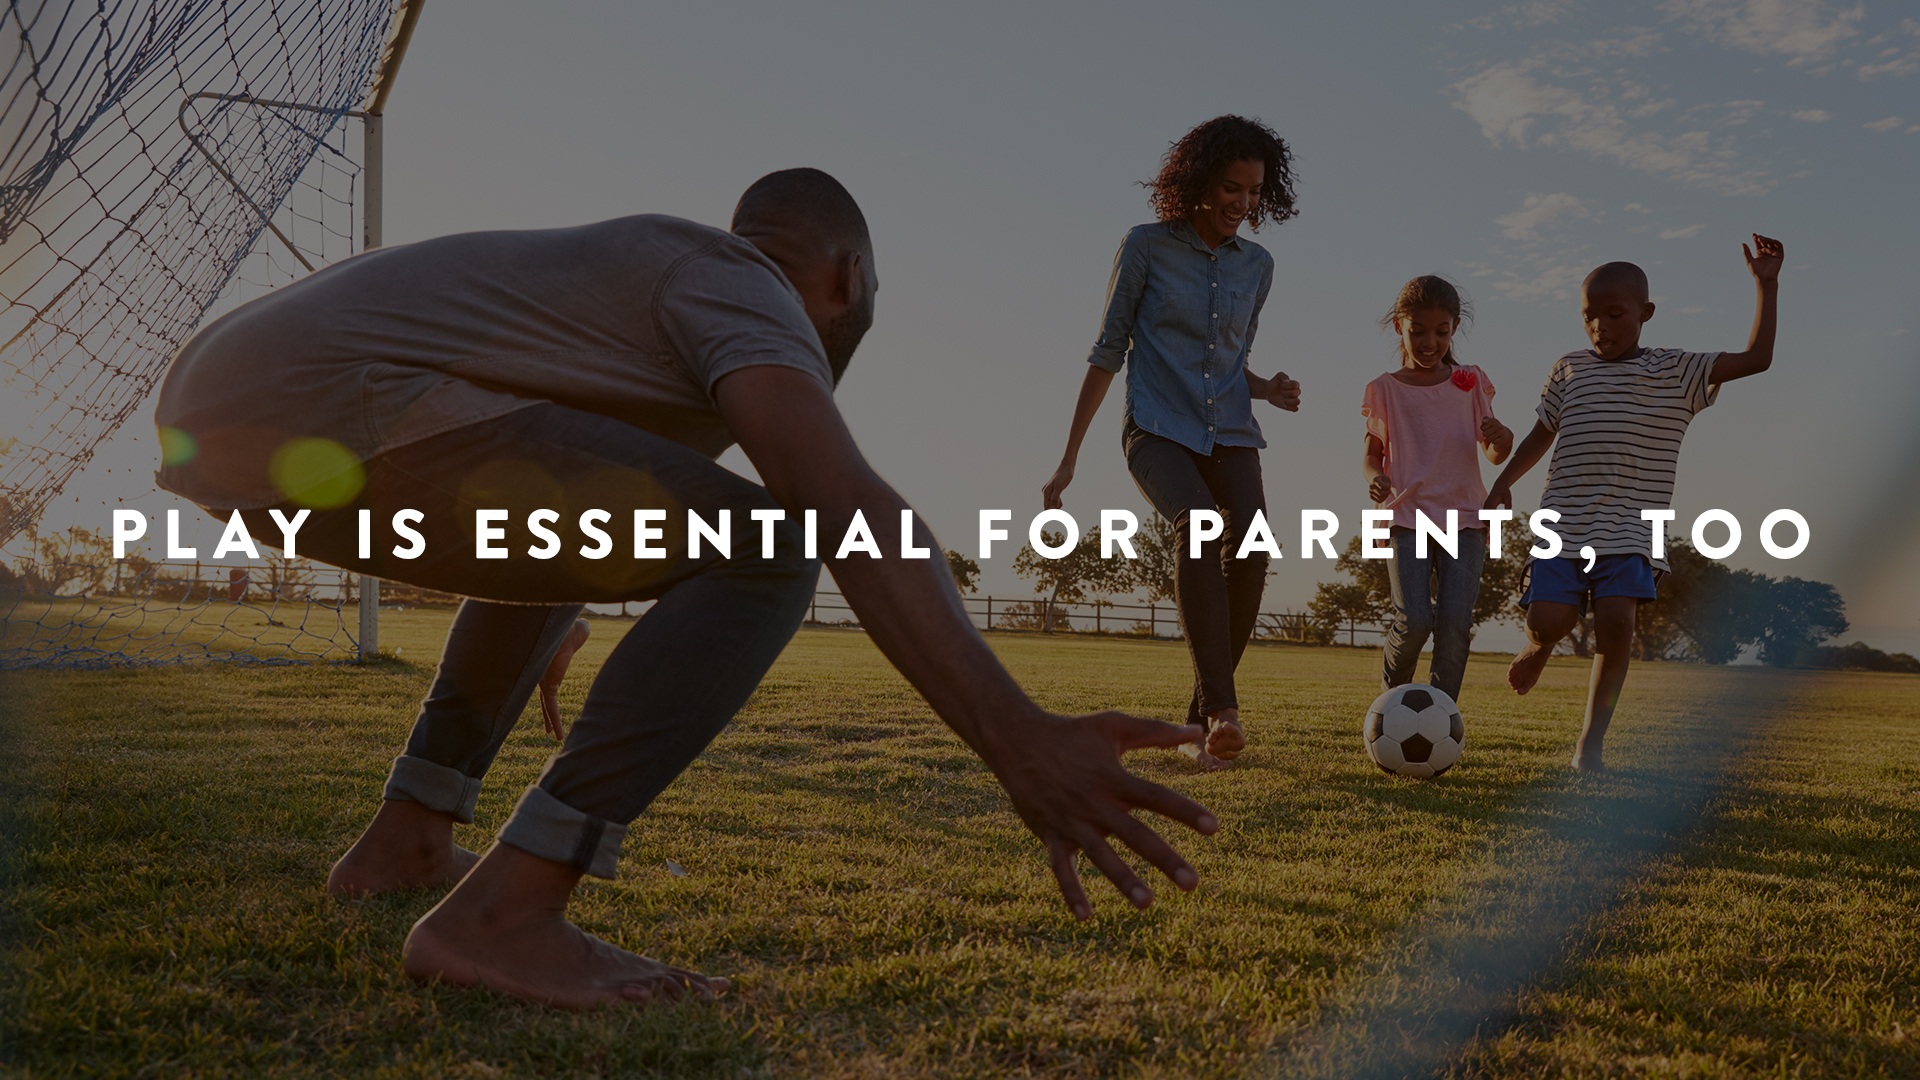 Play is important for parents too